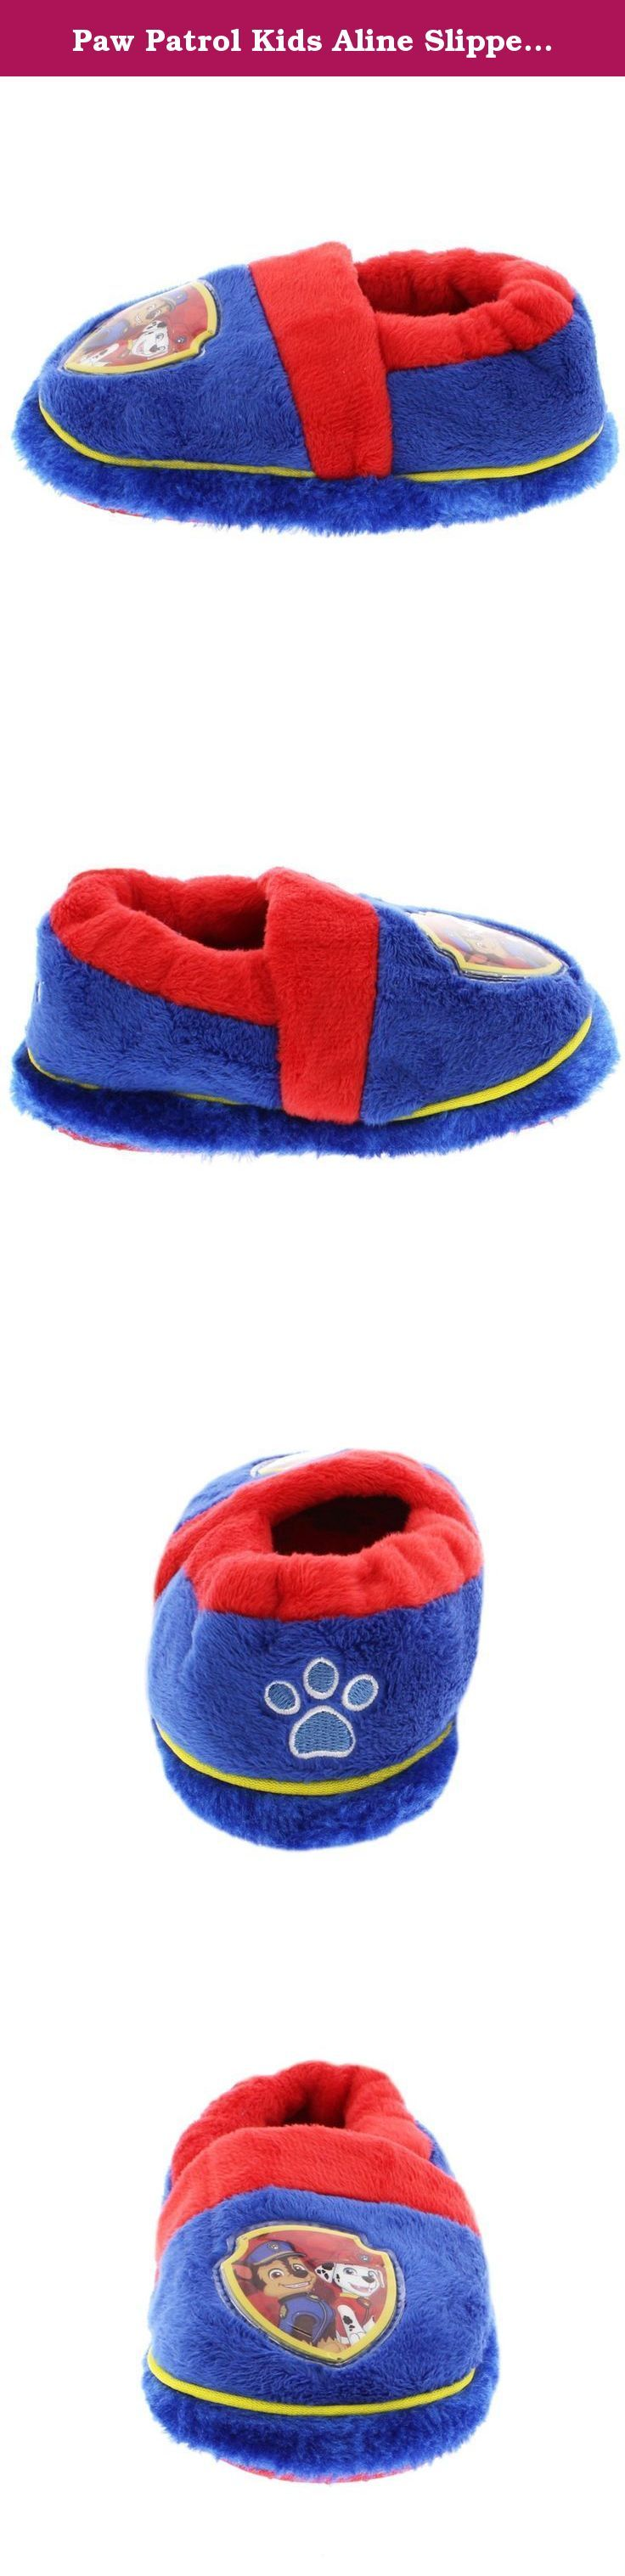 Paw Patrol Kids Aline Slippers (11-12 Little Kid M, Badge Blue). Paw Patrol is on a roll! Keep your little one's feet warm and cozy with these Nick Jr. Paw Patrol toddler and little kids Aline slippers! These Paw Patrol Aline slippers feature slip resistant soles, a soft plush texture, and images of your favorite rescue pups: Chase, Marshall, Skye, and Everest! The Bow Pink/Blue slipper contains a 3D bow! It's the perfect footwear choice for any fan of Nickelodeon's Paw Patrol! Choose one…